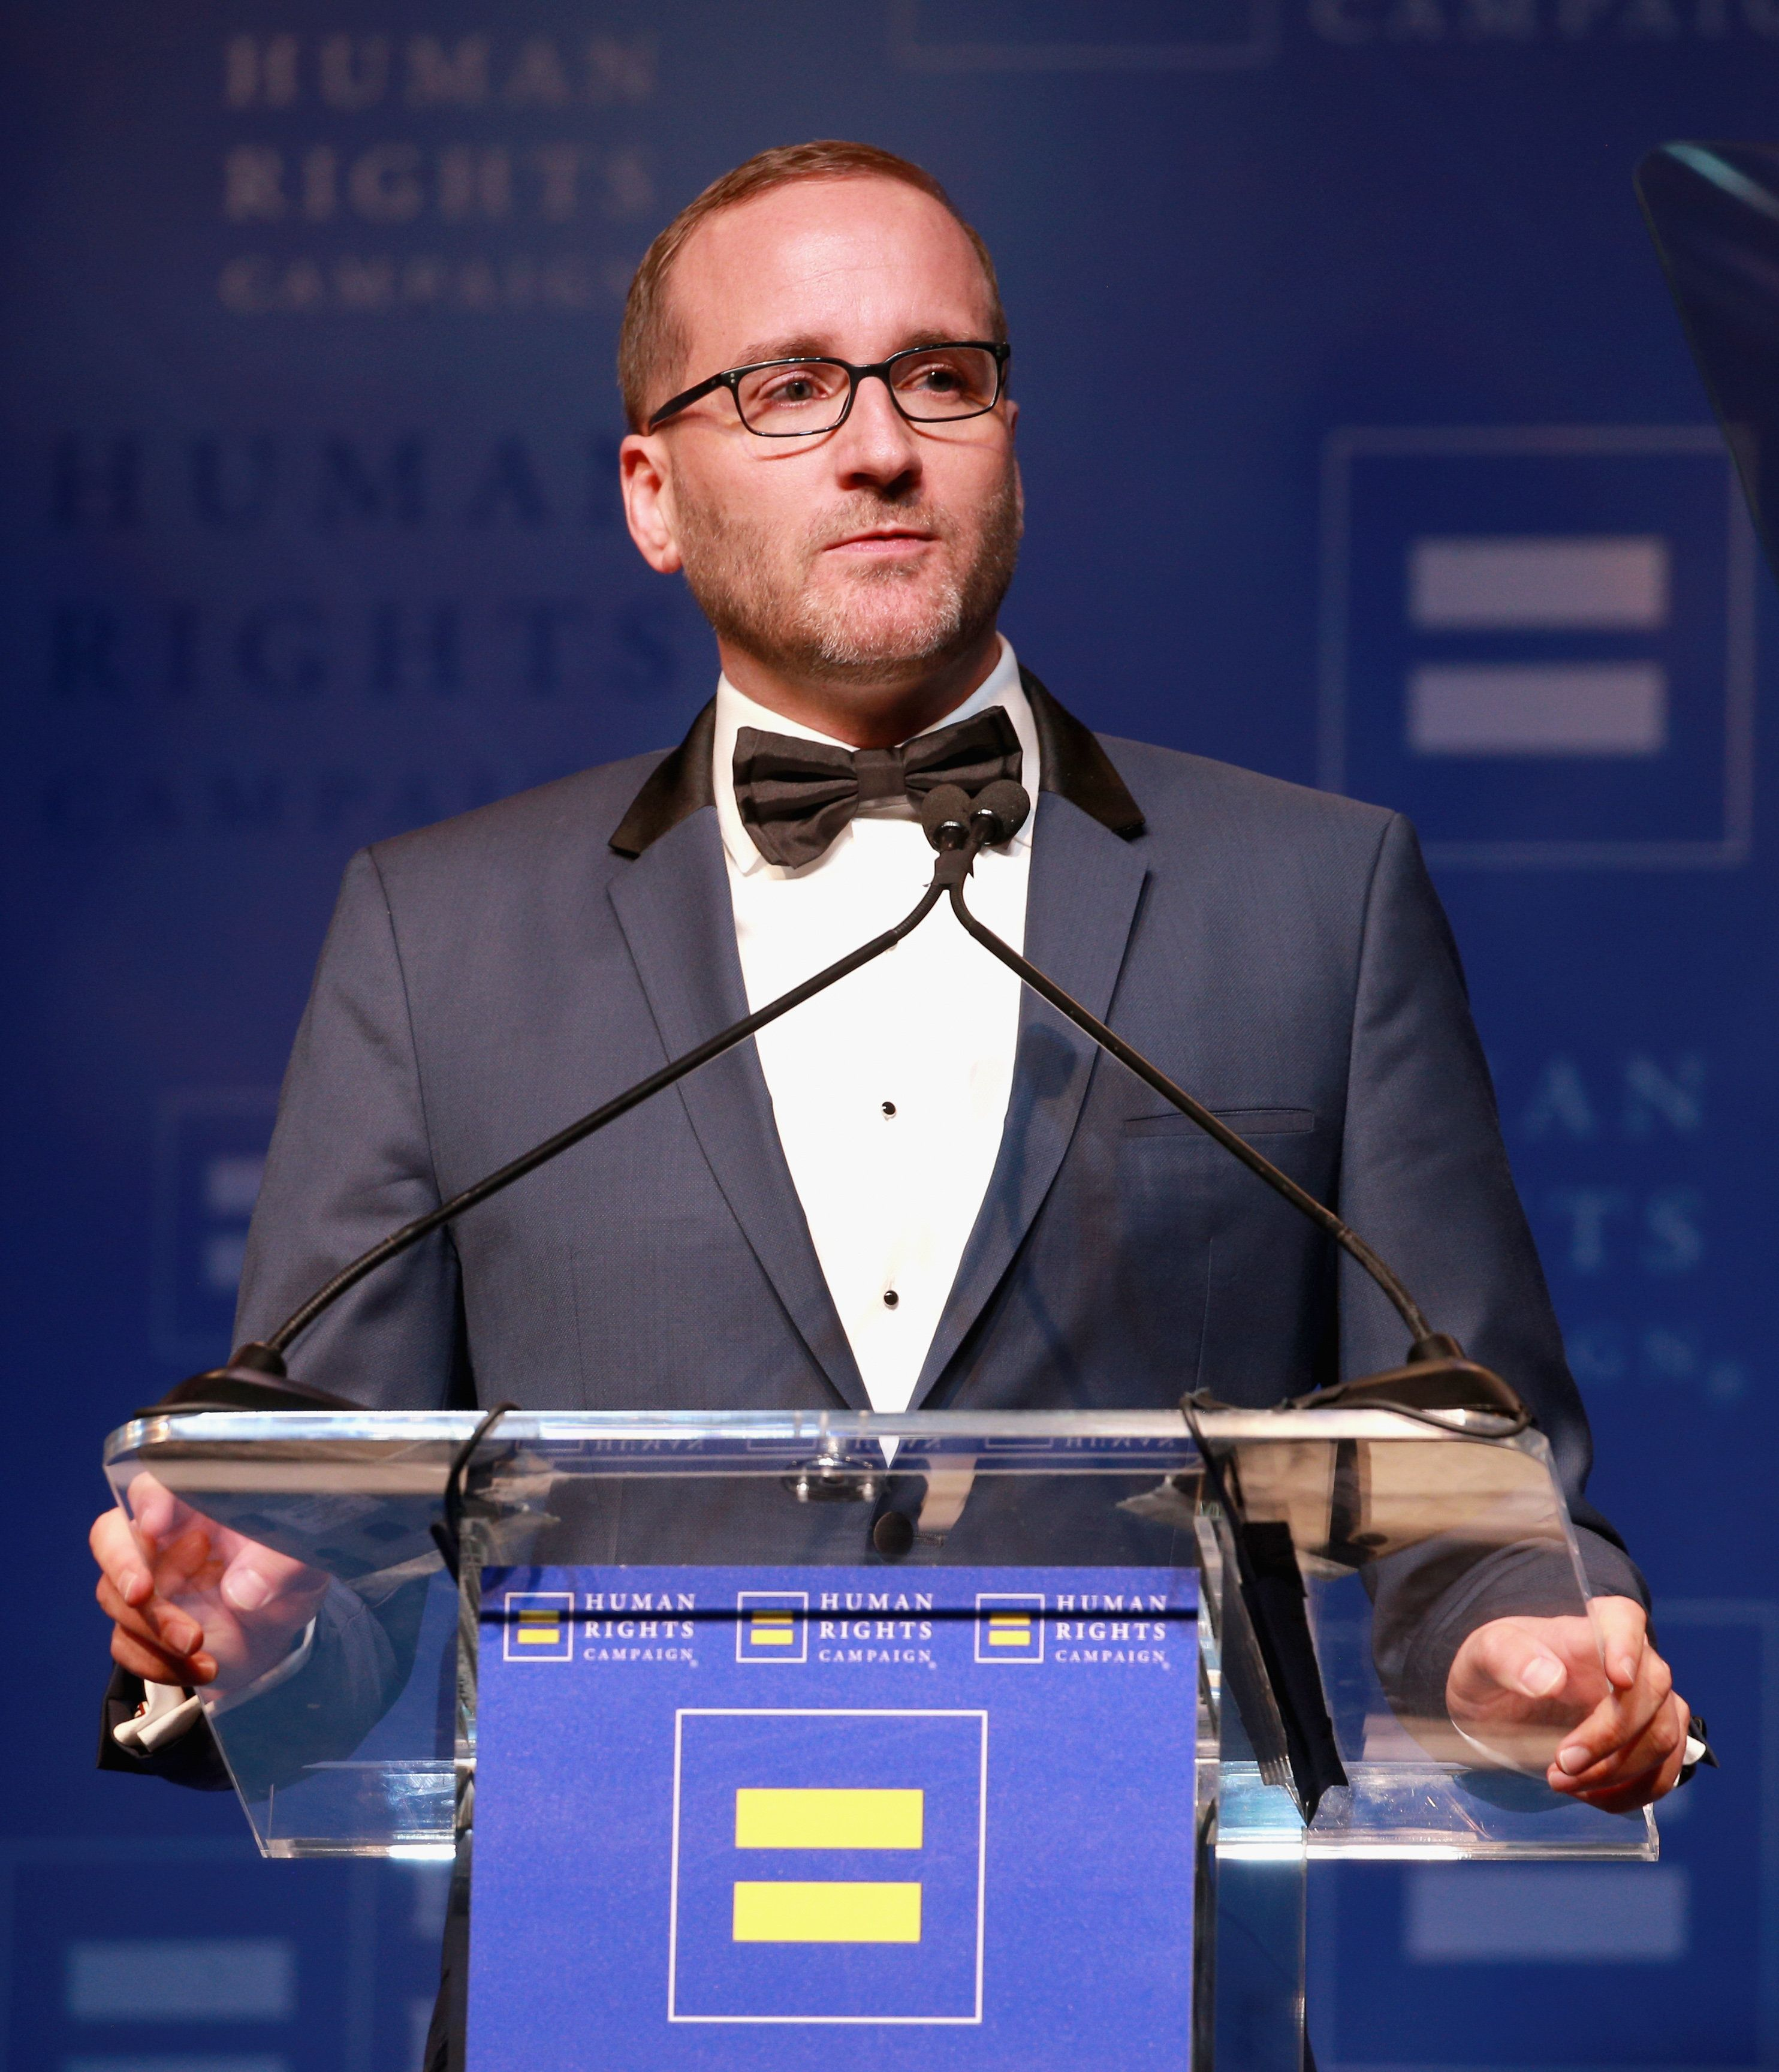 LOS ANGELES, CA - MARCH 10:  HRC President Chad Griffin speaks onstage at The Human Rights Campaign 2018 Los Angeles Gala Dinner at JW Marriott Los Angeles at L.A. LIVE on March 10, 2018 in Los Angeles, California.  (Photo by Rich Fury/Getty Images for Human Rights Campaign (HRC))